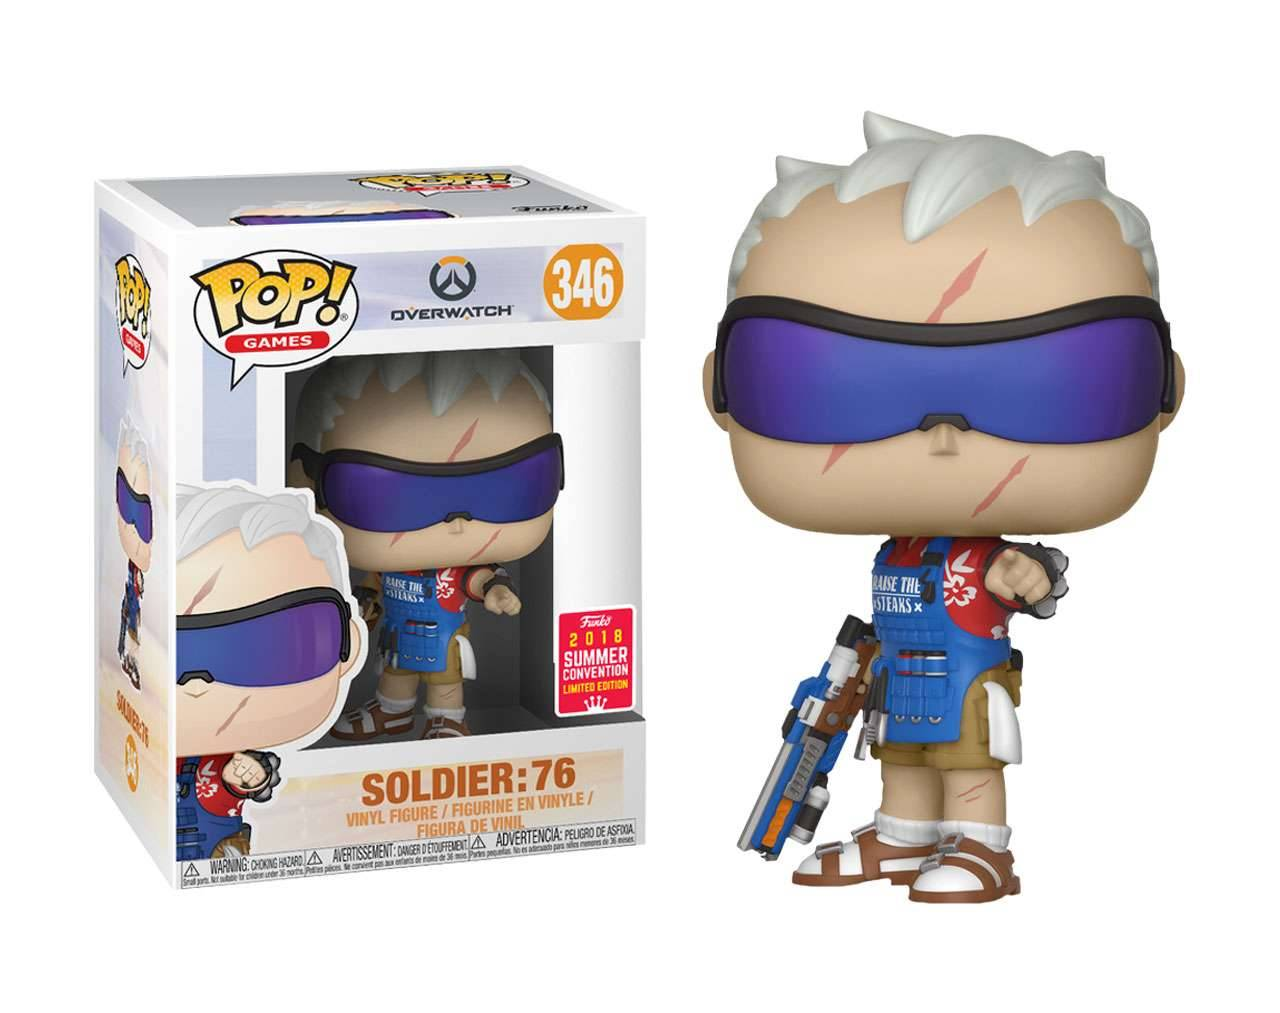 Soldier: 76 (SDCC 2018) Pop! Vinyl